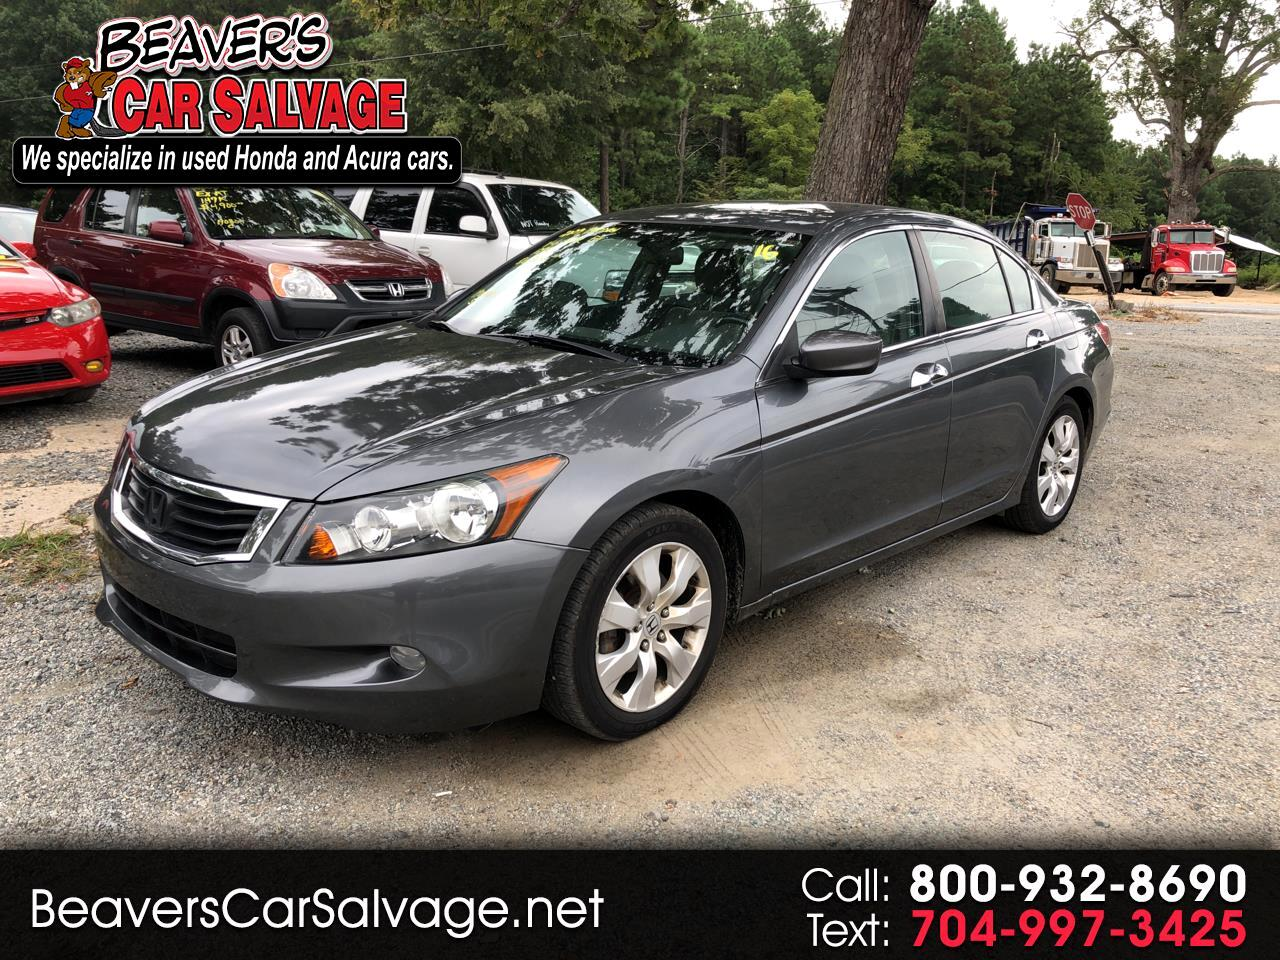 2009 Honda Accord Sedan 4dr I4 CVT EX